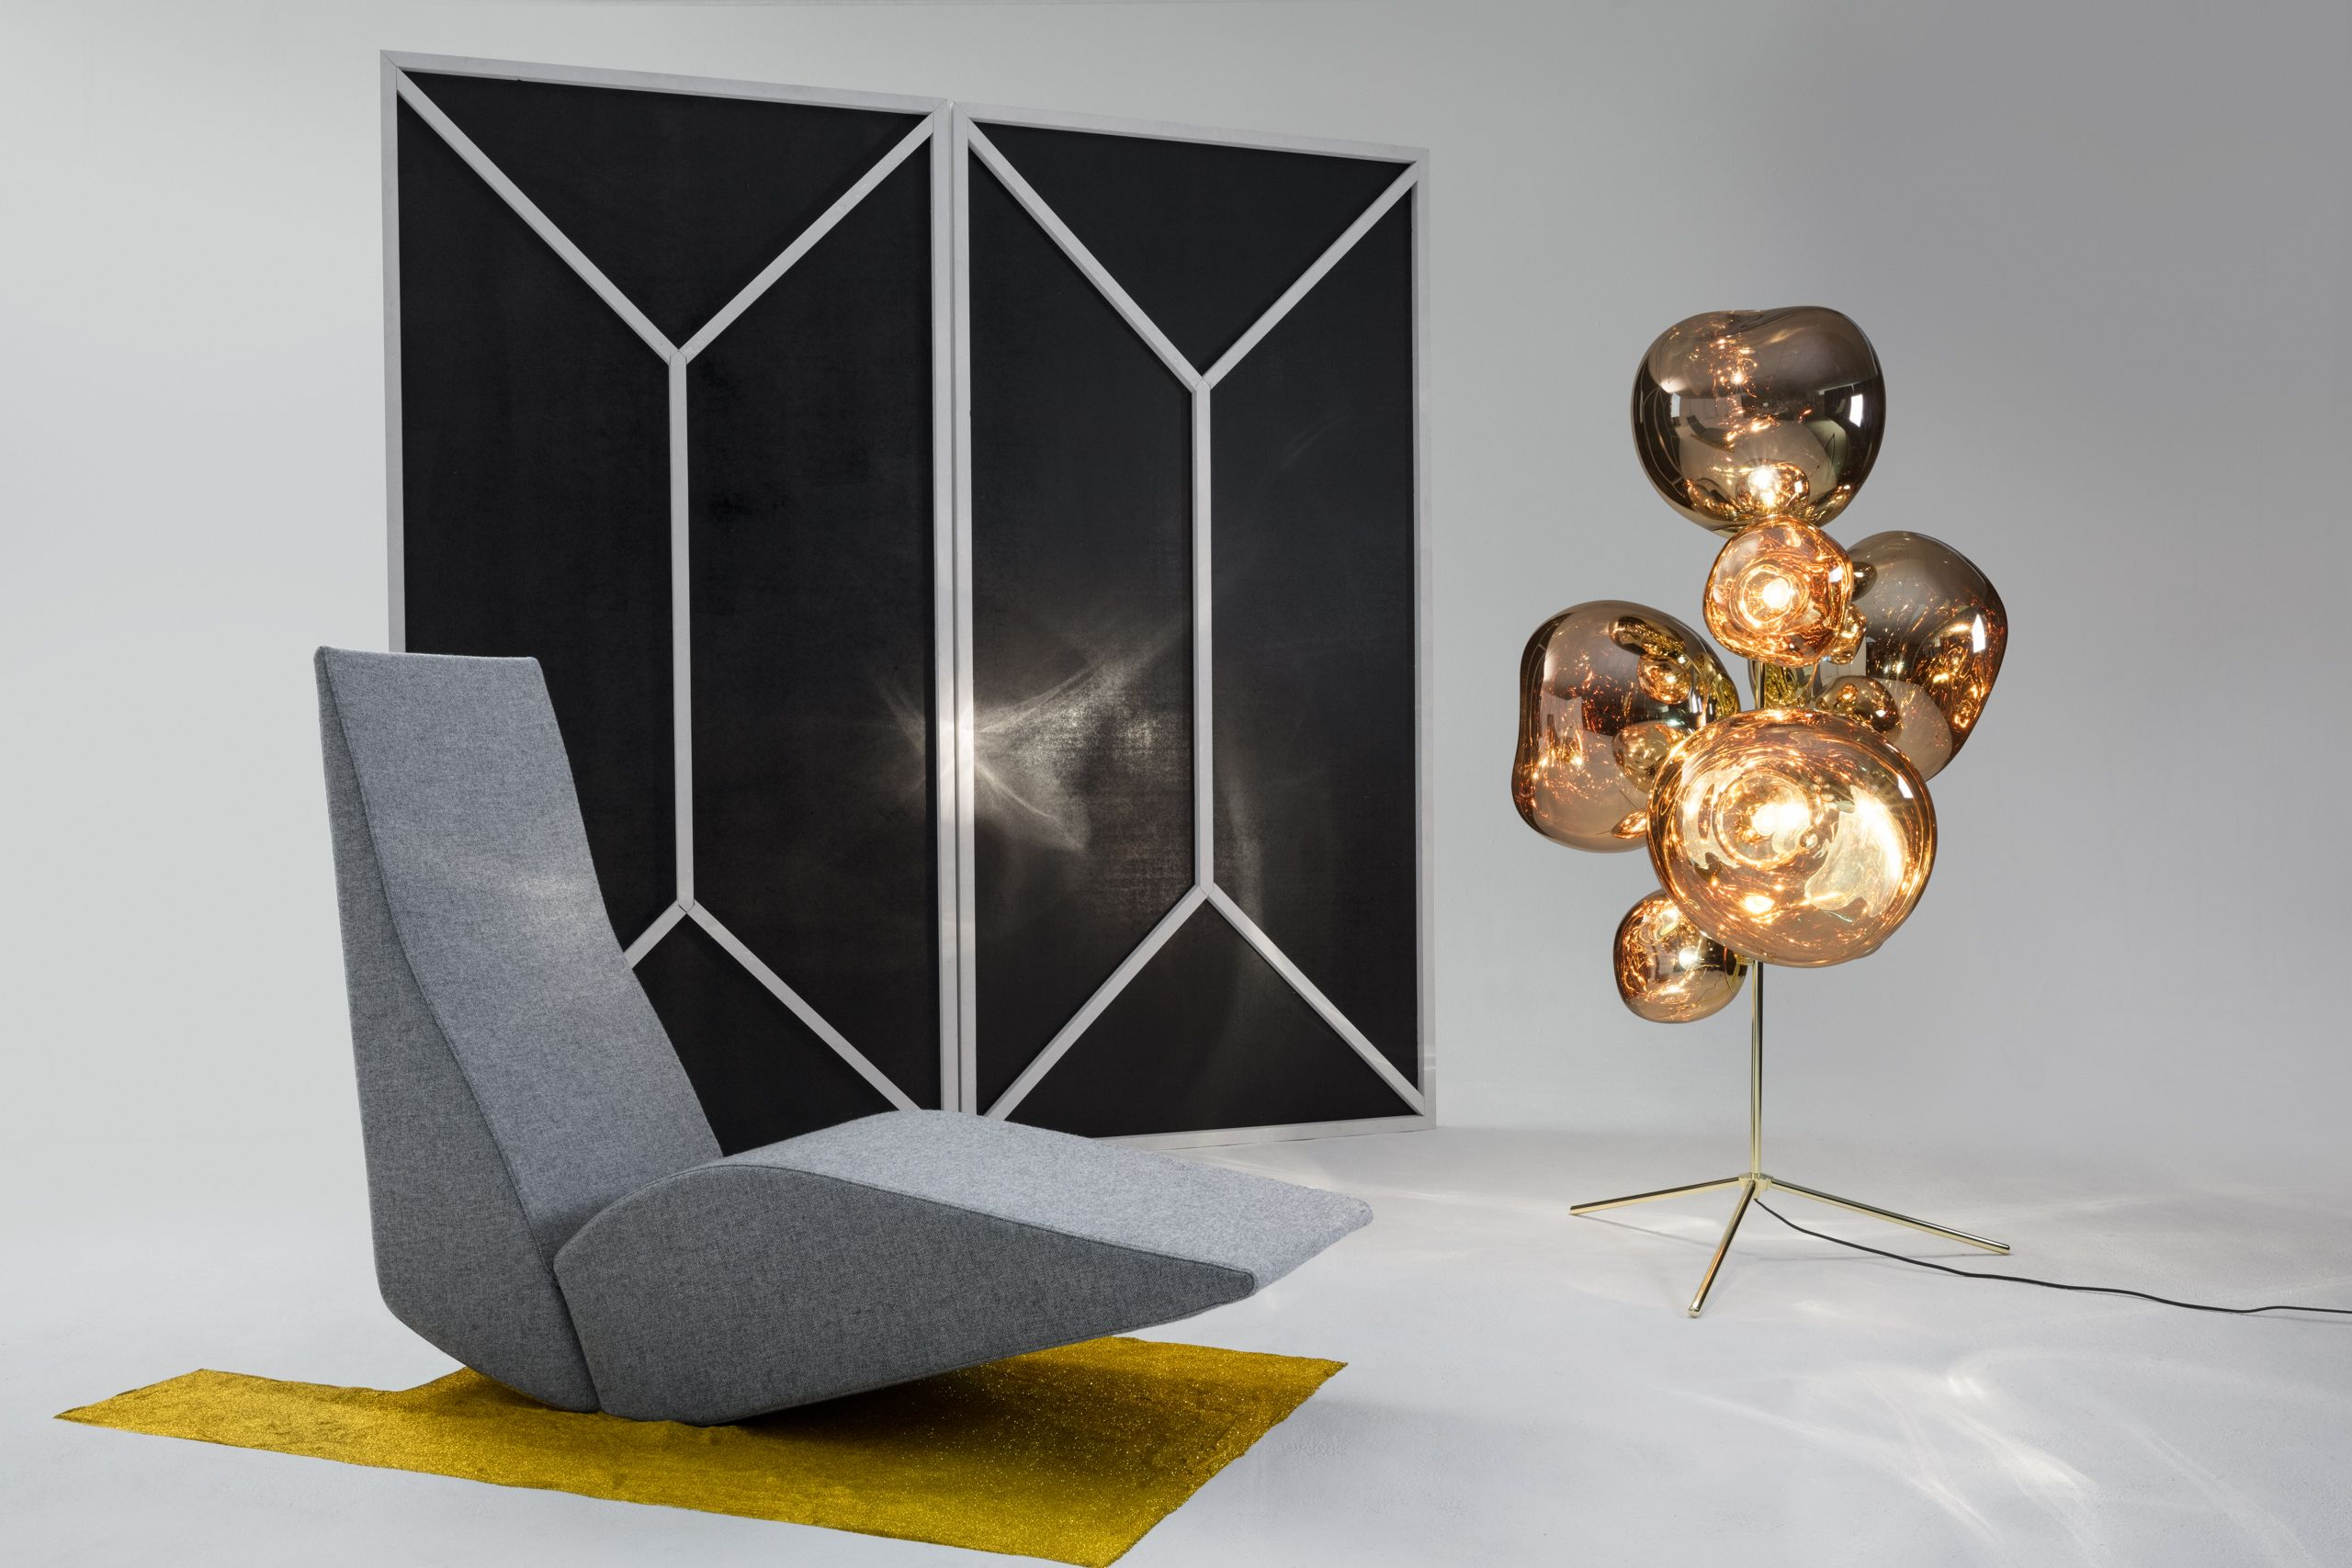 Bird Chaise With Melt Standing Chandelier 15 Off All Tom Dixon Lighting Furniture And Accessories Now Thru Oc Tom Dixon Tom Dixon Melt Chandelier Floor Lamp